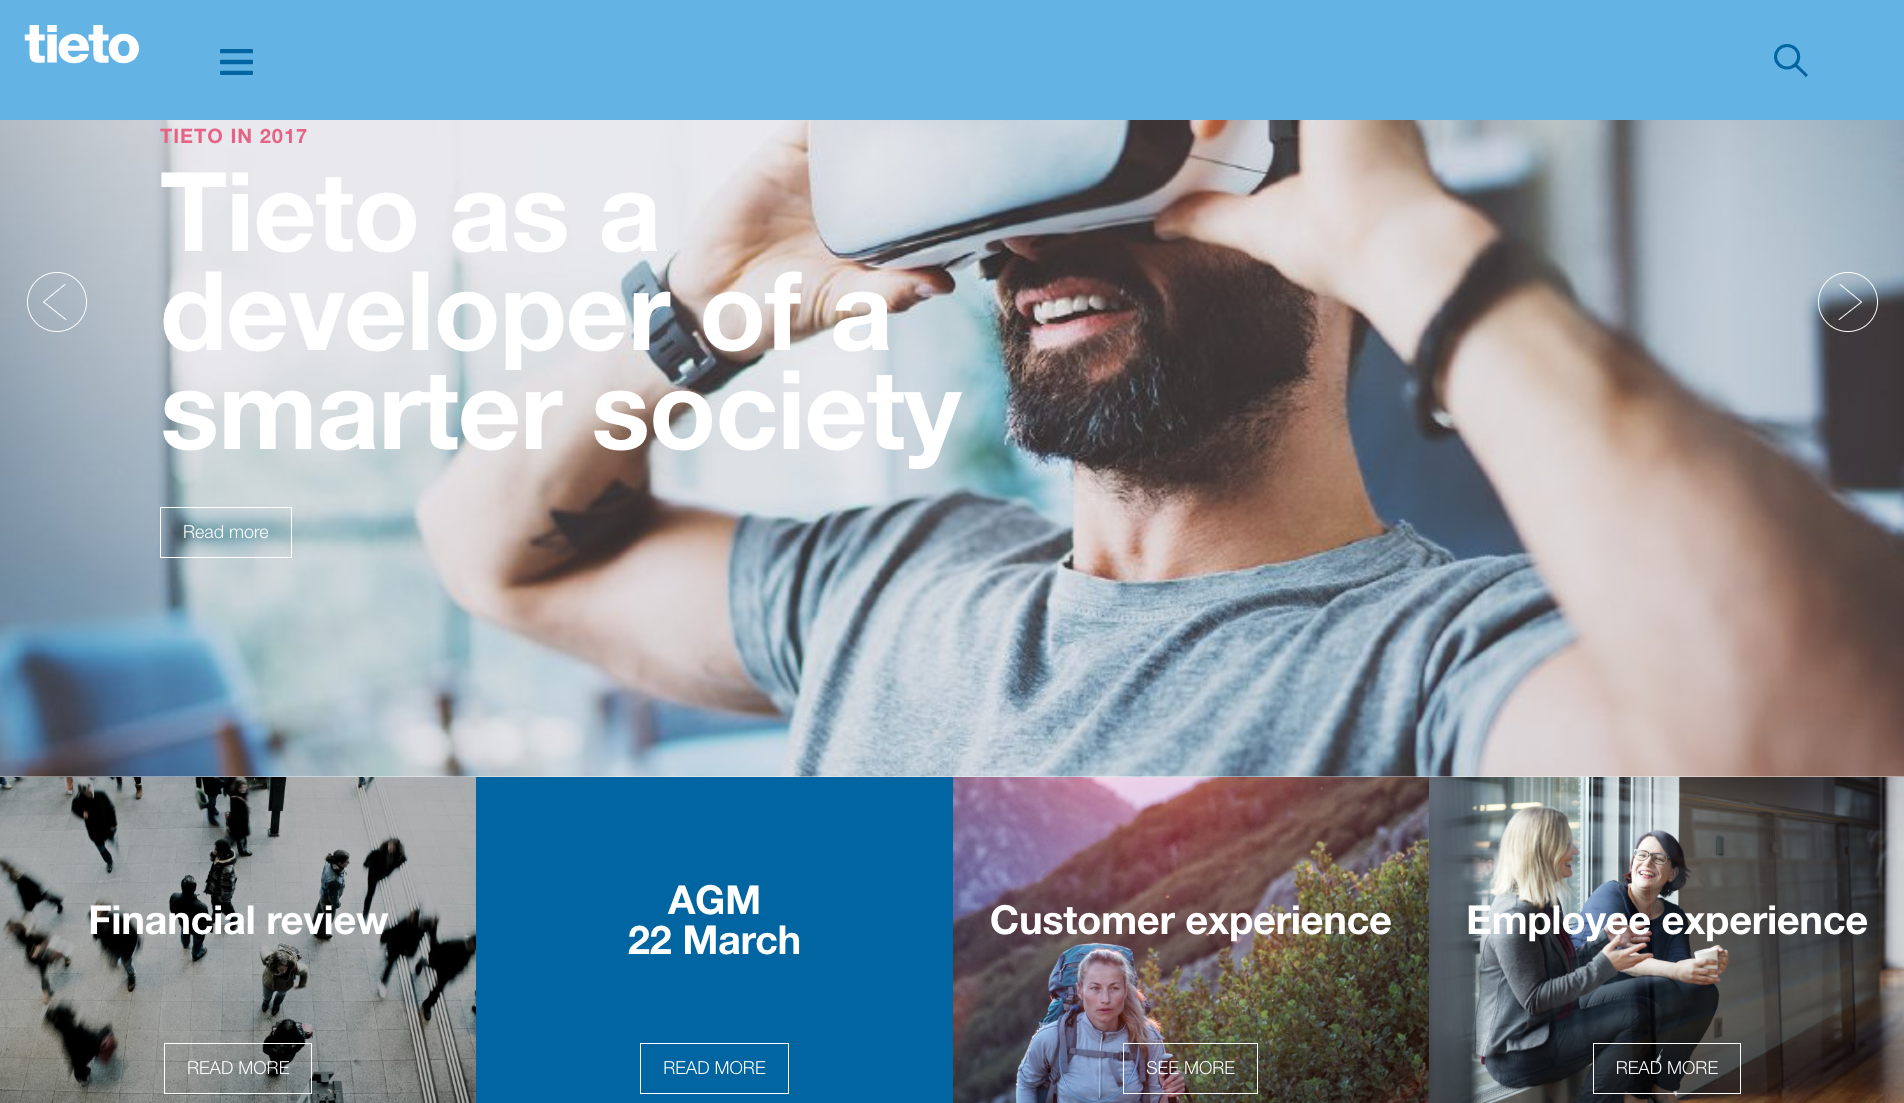 Tieto's annual report, done by Liana Technologies and Miltton